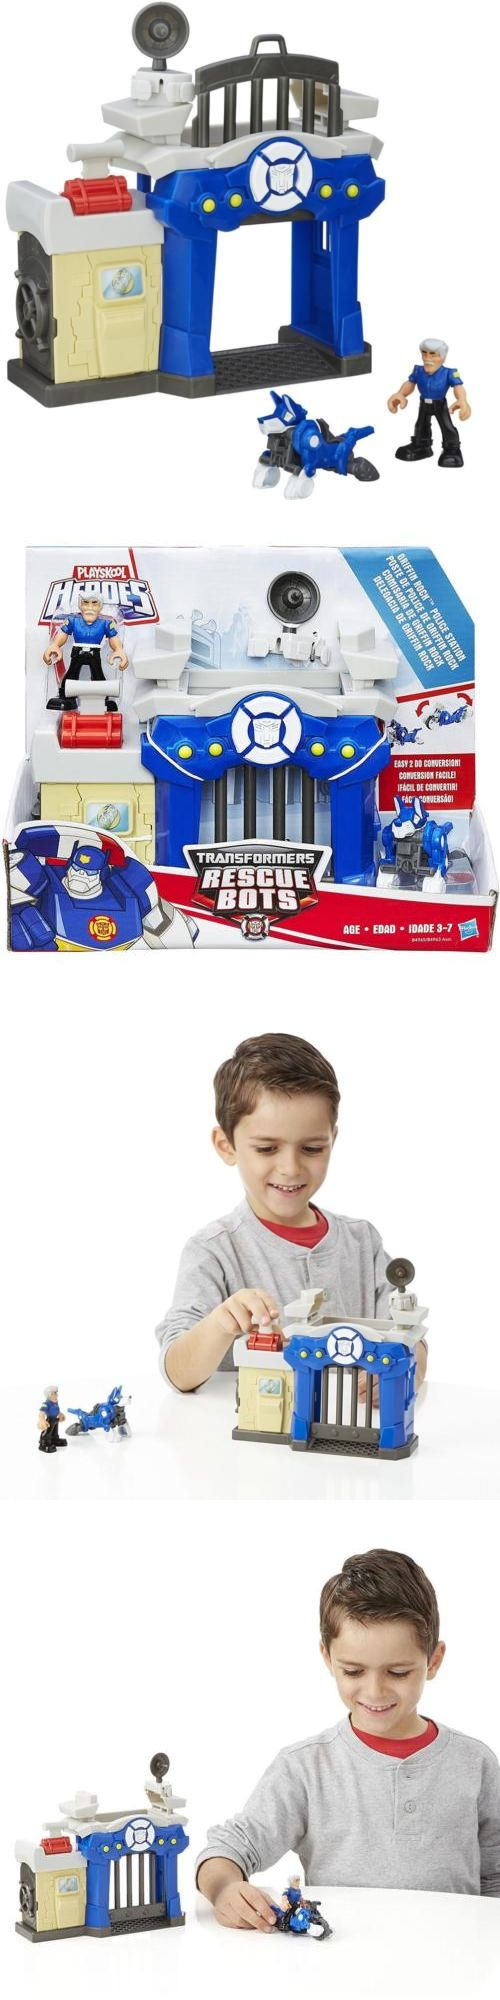 Playskool 2576: New Playskool Heroes Transformers Police Station Rescue Bots Griffin Rock Growl -> BUY IT NOW ONLY: $30.66 on eBay!